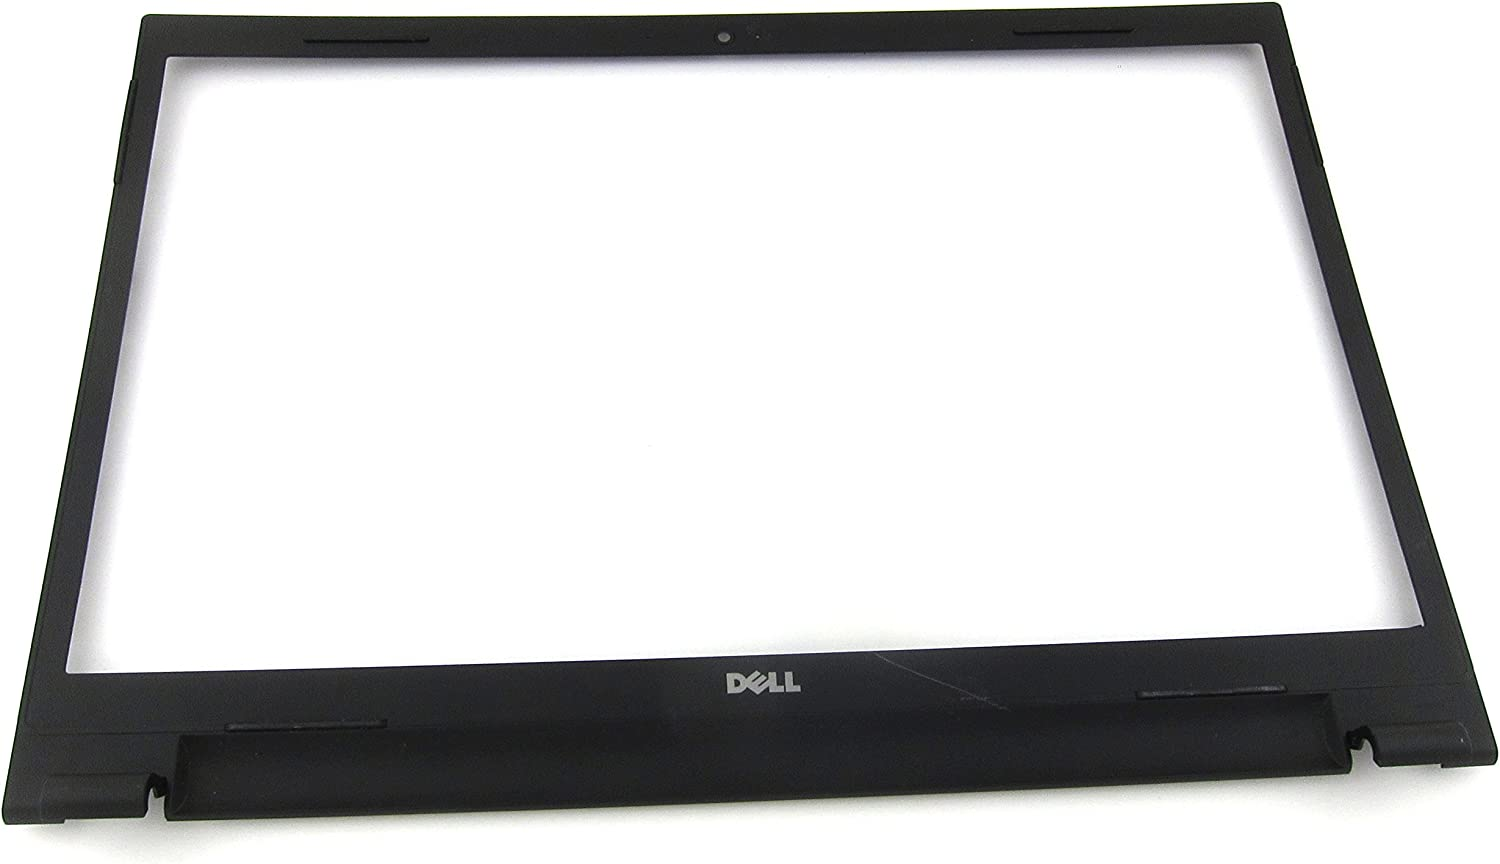 "Dell Inspiron 15 3541/3542 15.6"" Touchscreen LCD Trim Bezel - 812W4"